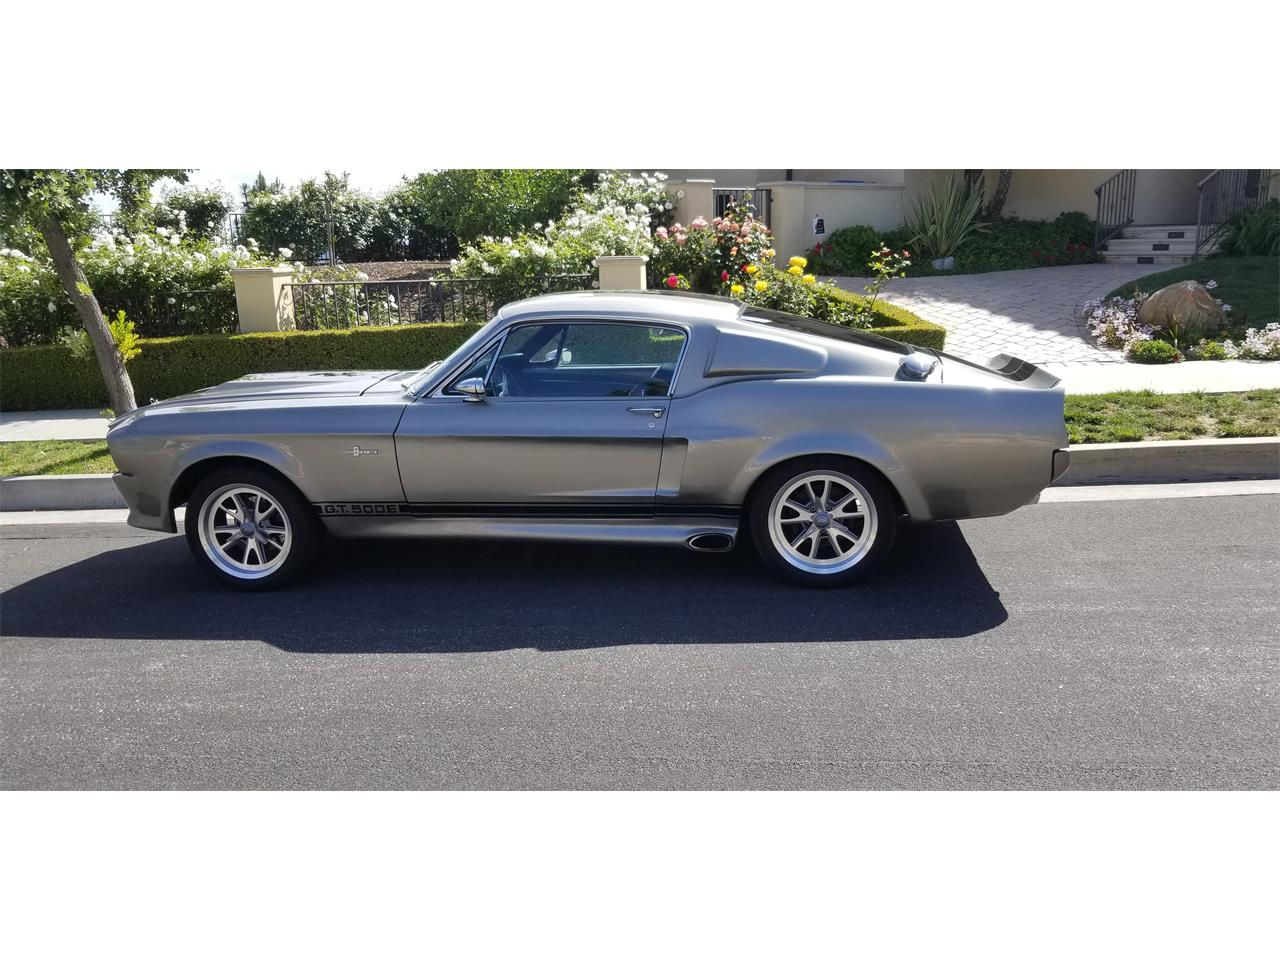 For Sale: 1968 Shelby GT500 in Van Nuys, California